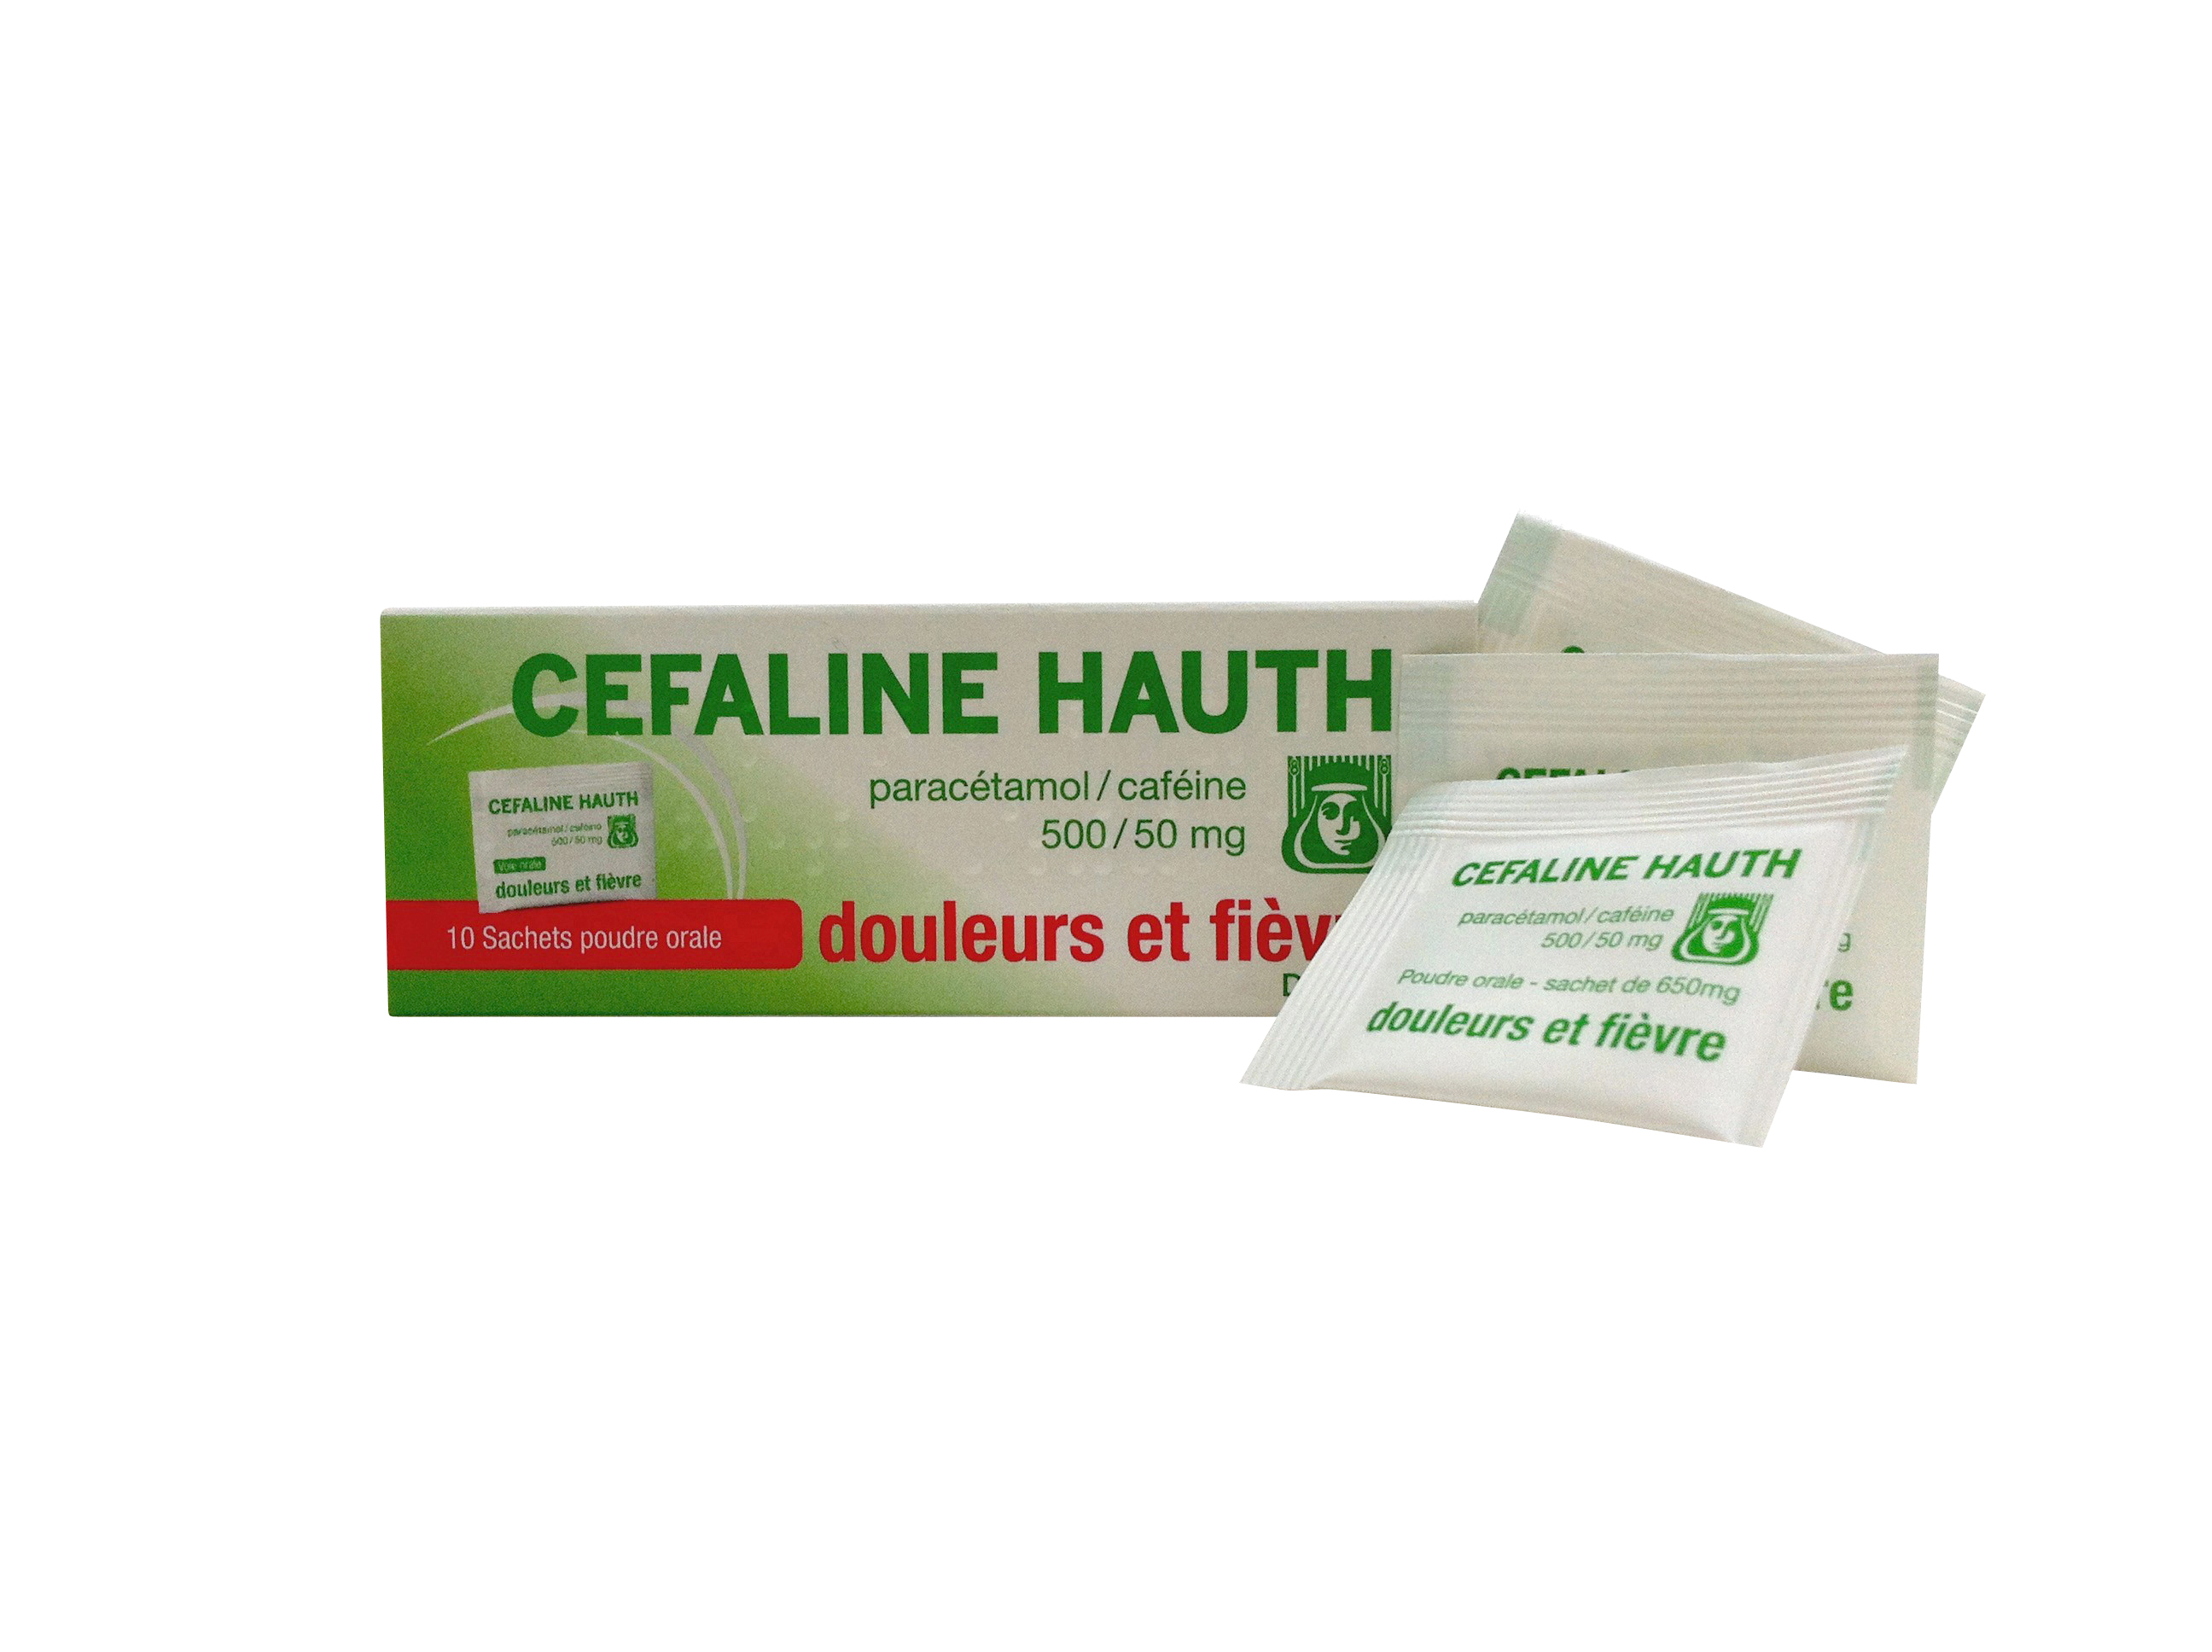 Image CEFALINE HAUTH Pdr susp buv 10Sach